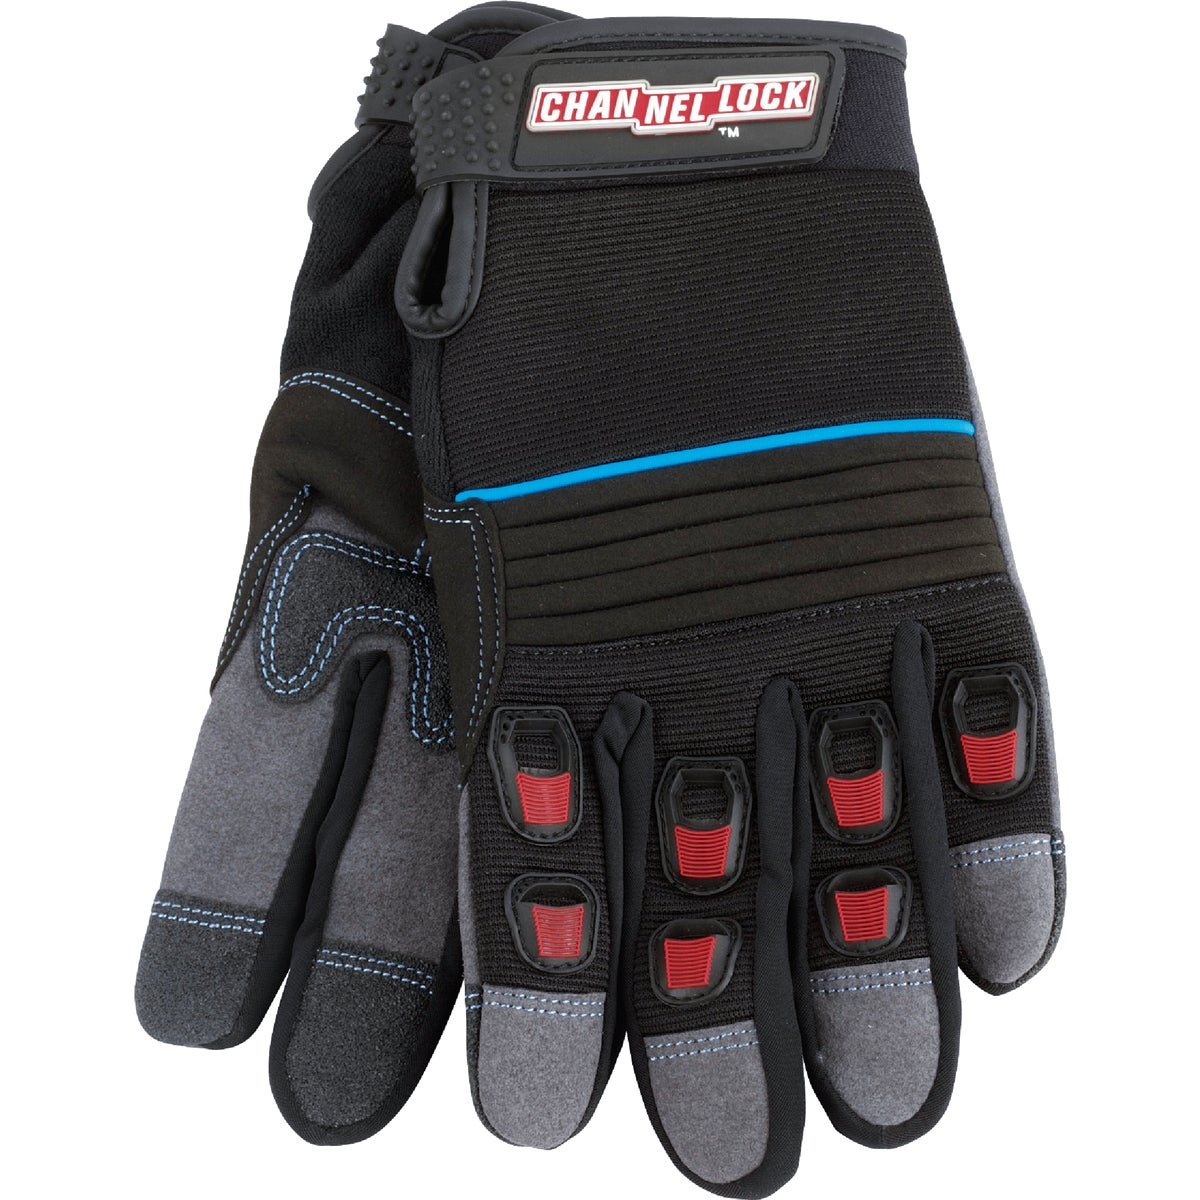 XL PRO HVY DUTY GLOVE - 760577 by Channellock®